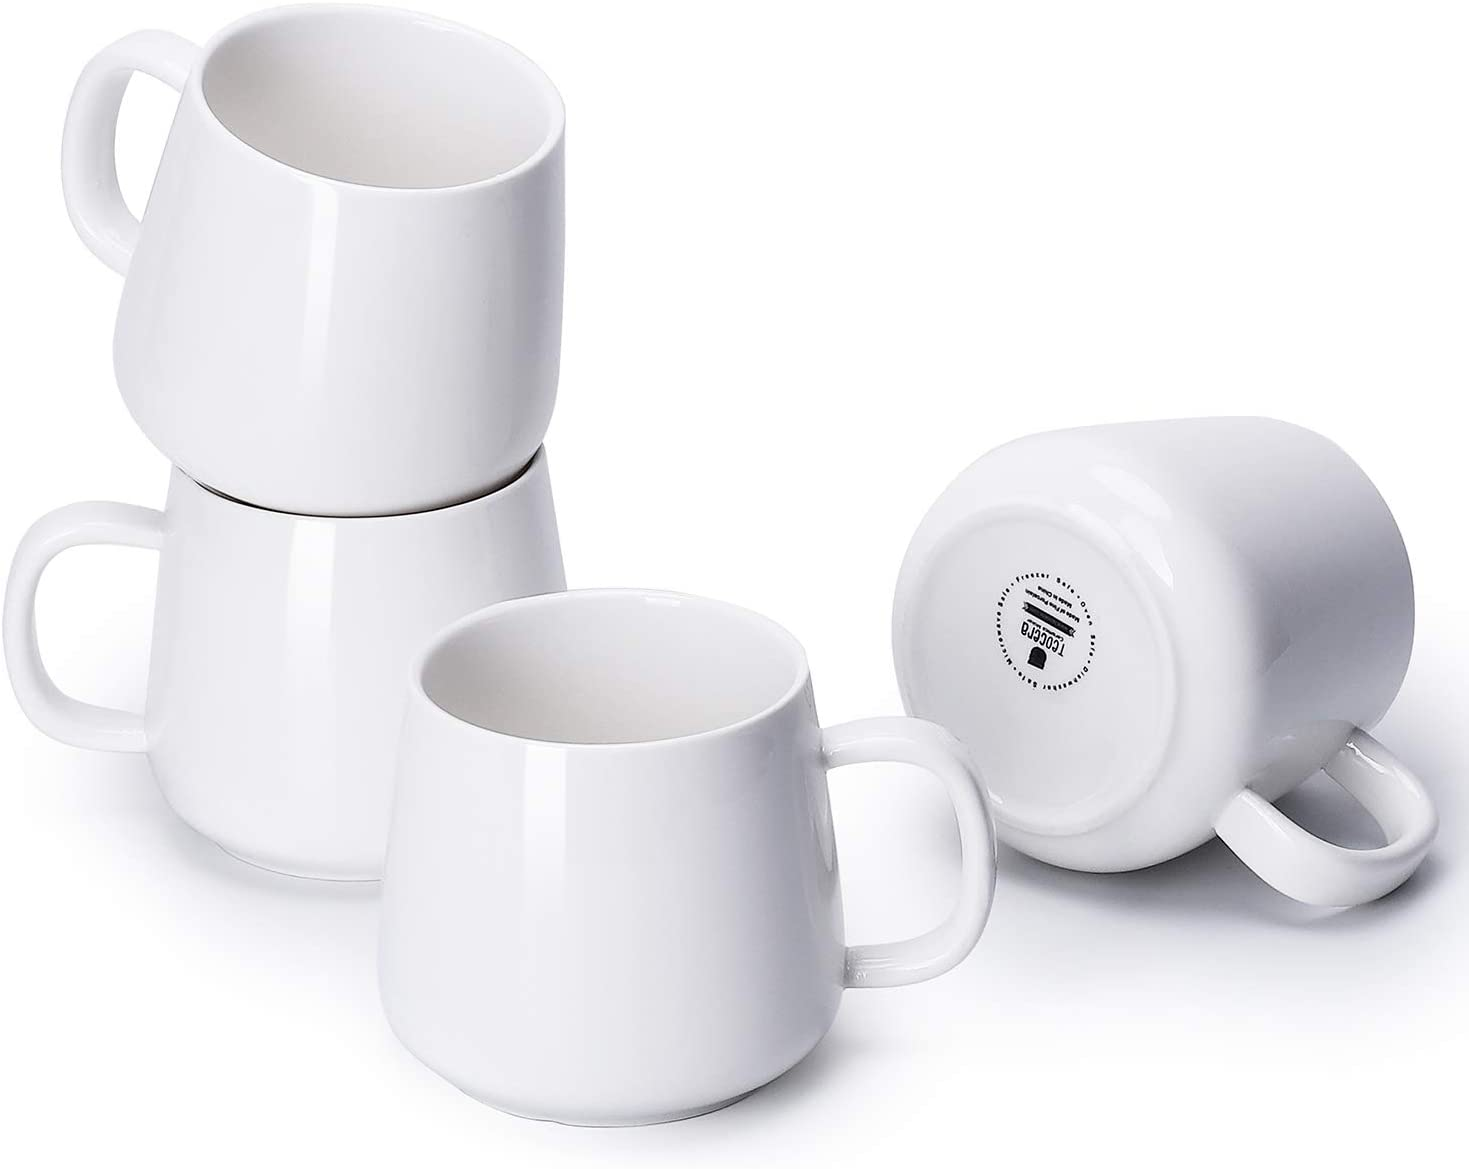 Teocera Porcelain Coffee Mugs, Coffee Cup Set - 12 Ounce for Tea, Cocoa, and Mulled Drinks - Set of 4, White